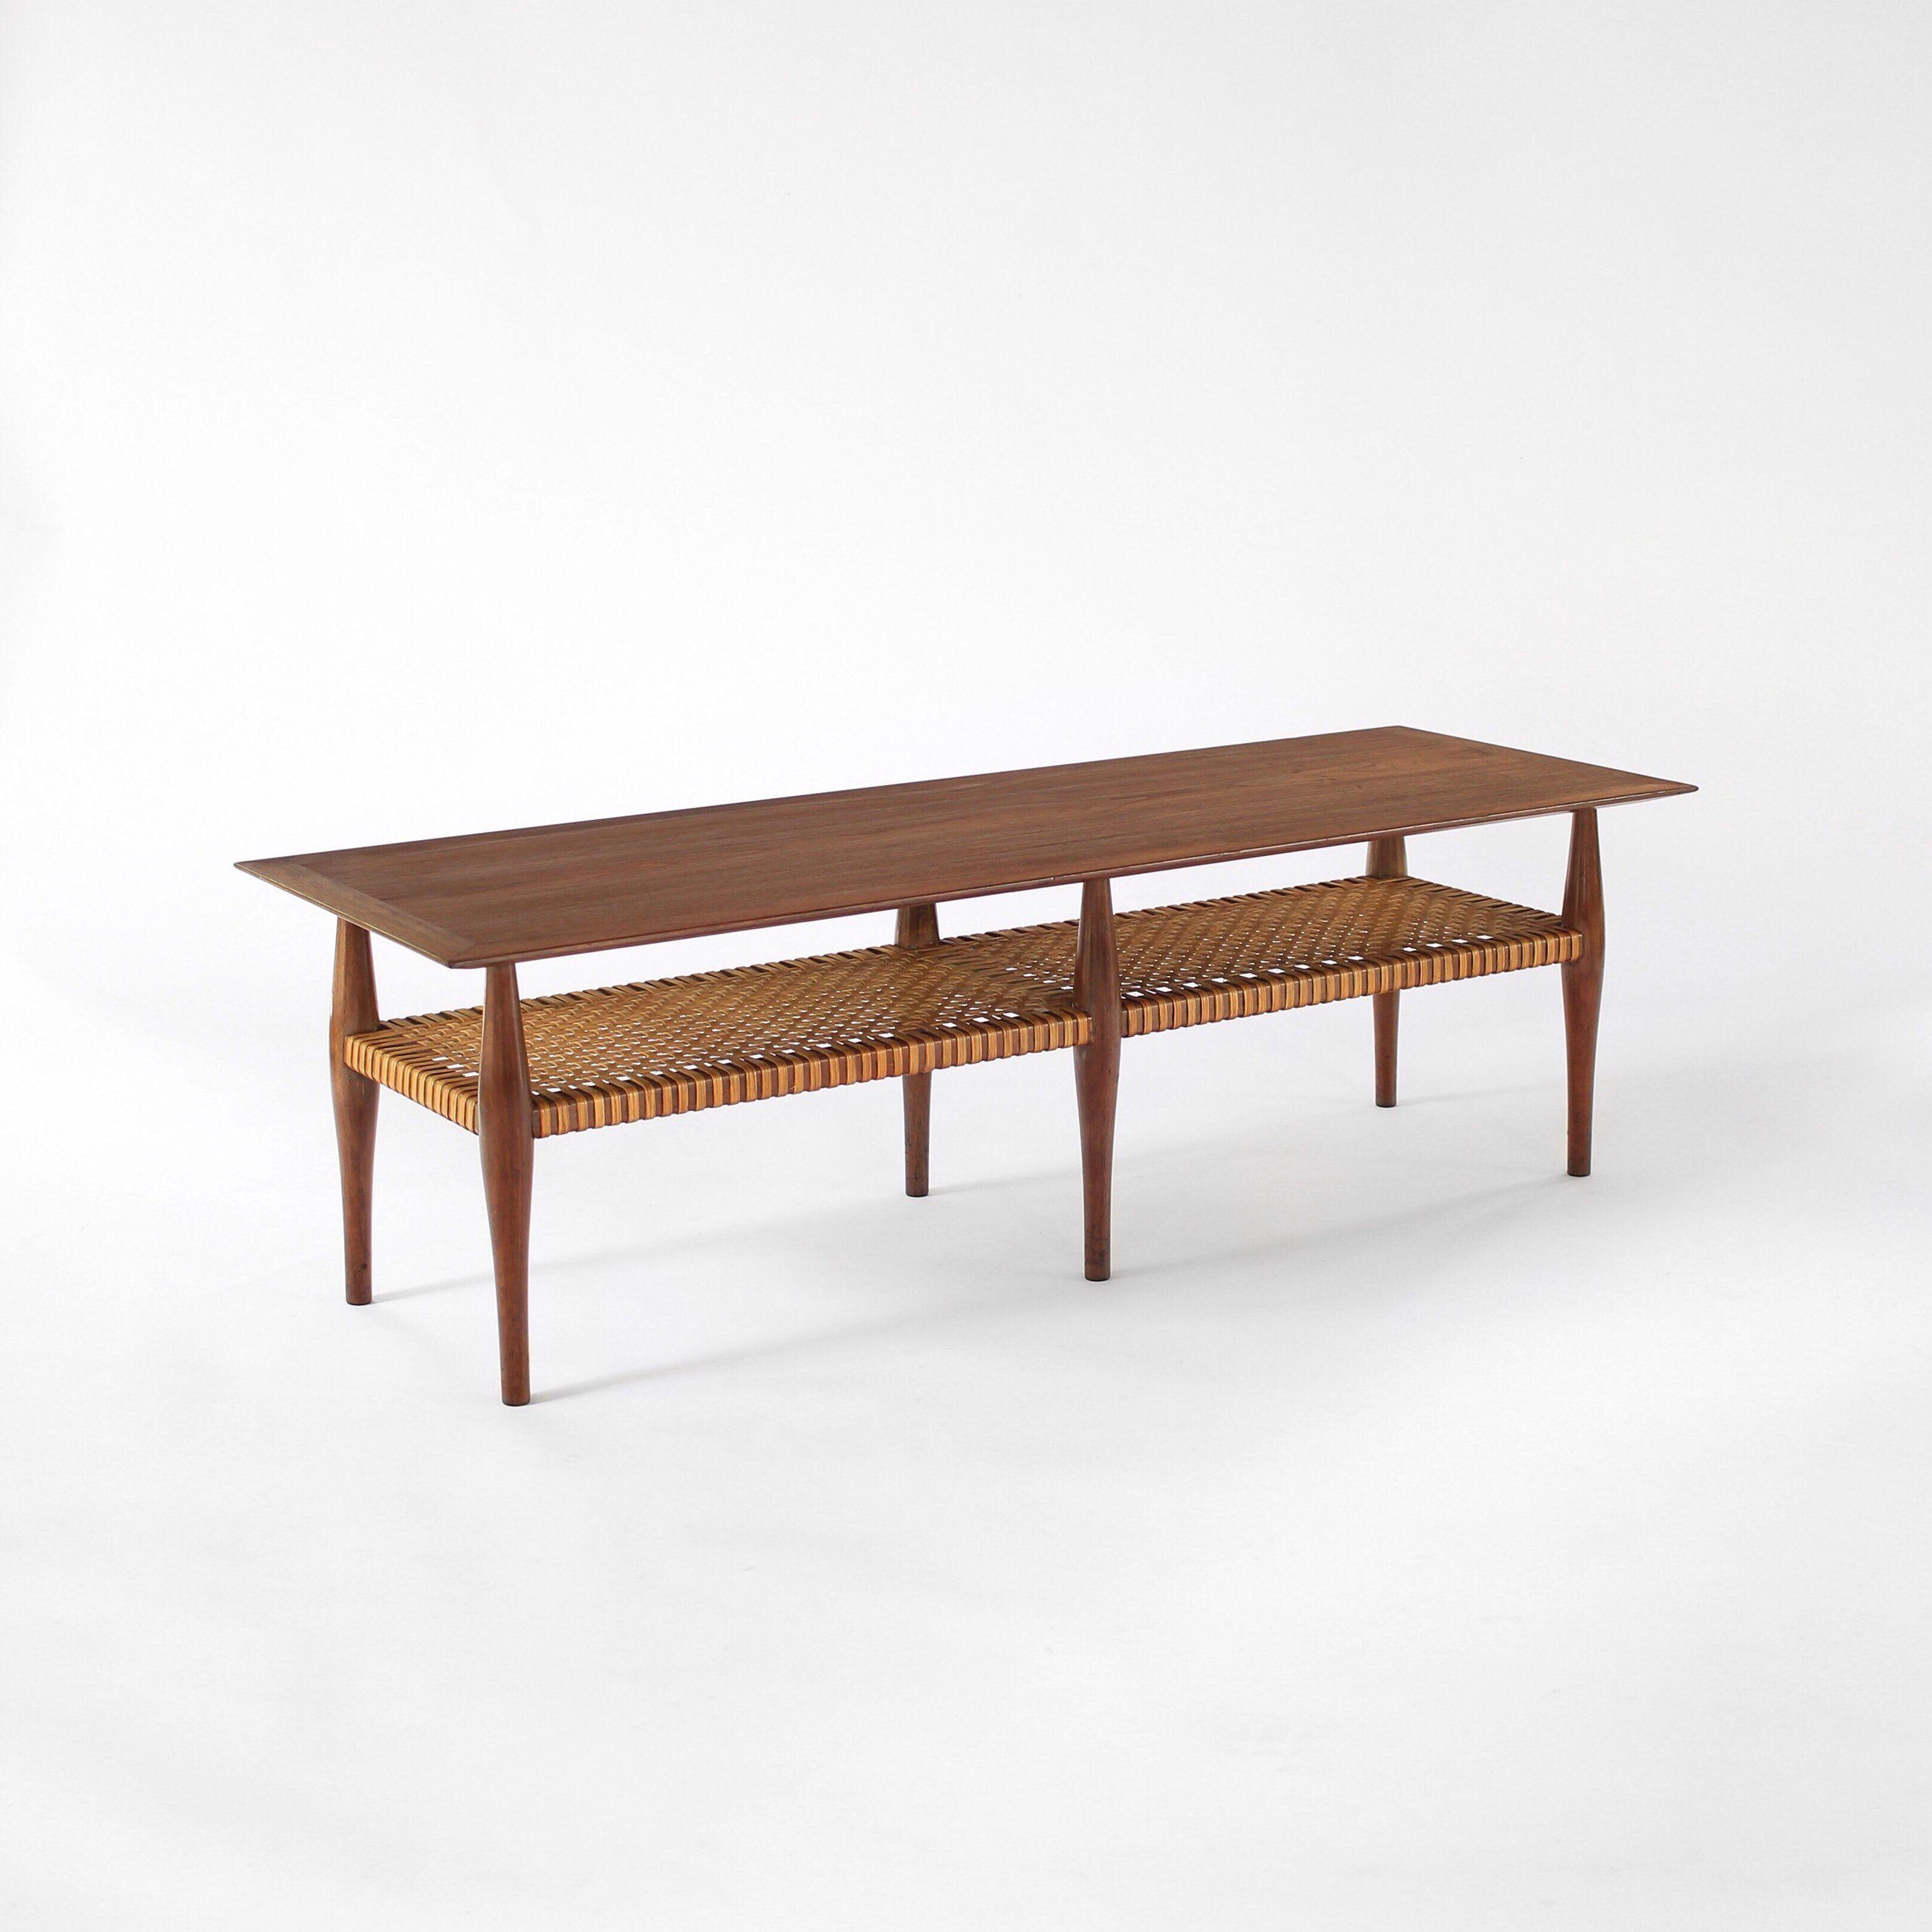 Vintage Mid Century Scandinavian Modern Coffee Table Walnut And Cane From Sweden By Revisionfurniture O In 2020 Coffee Table Walnut Coffee Table Modern Coffee Tables